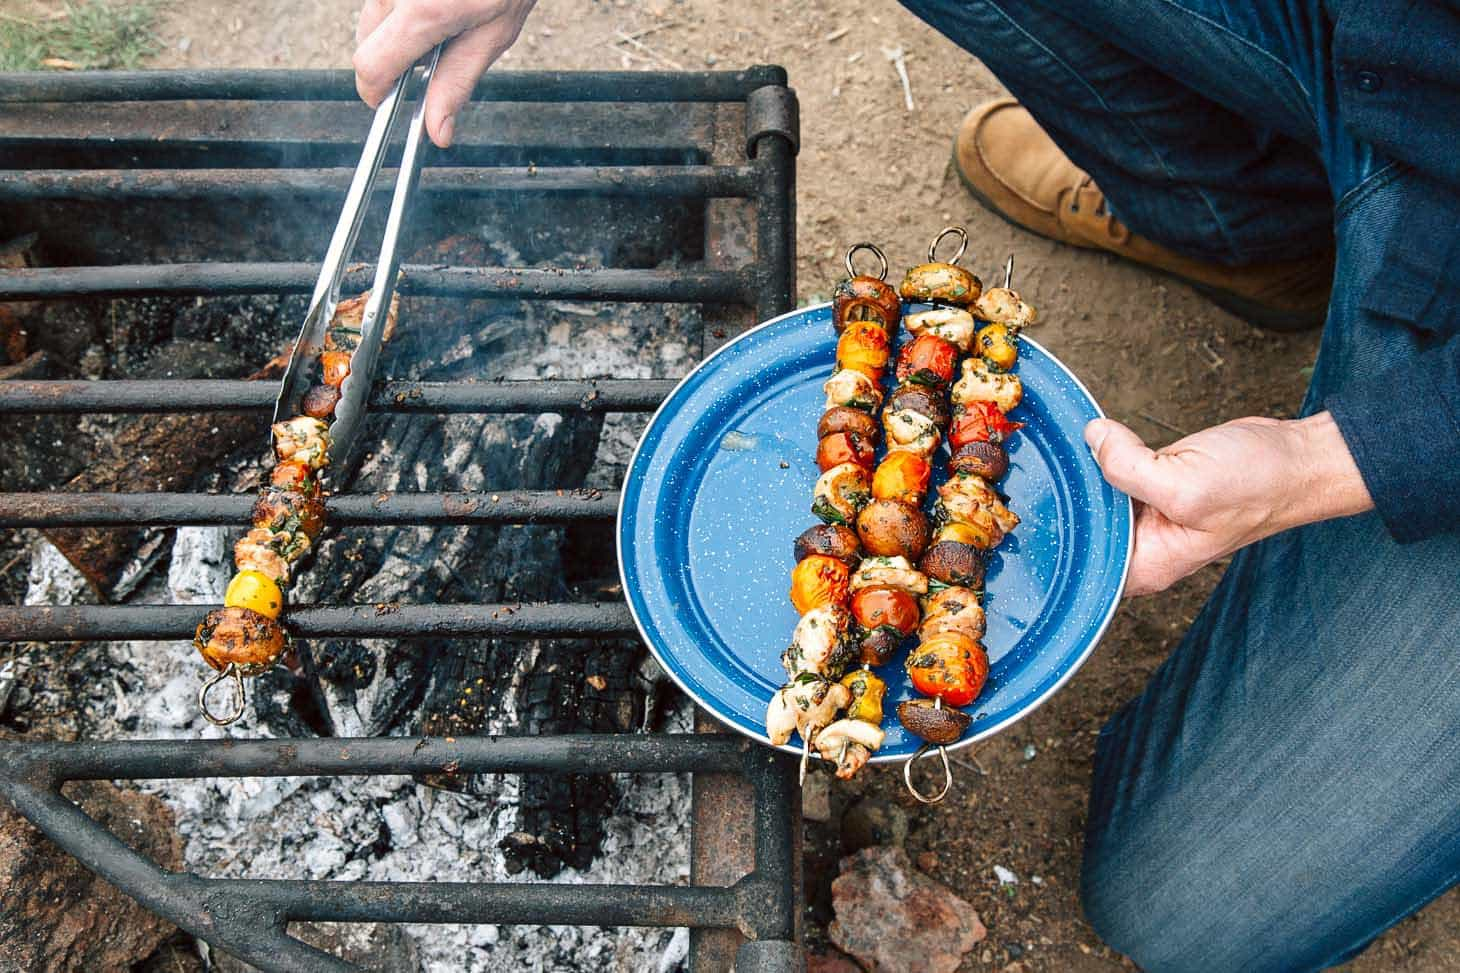 These grilled veggie & chicken skewers are a great make ahead camping meal.